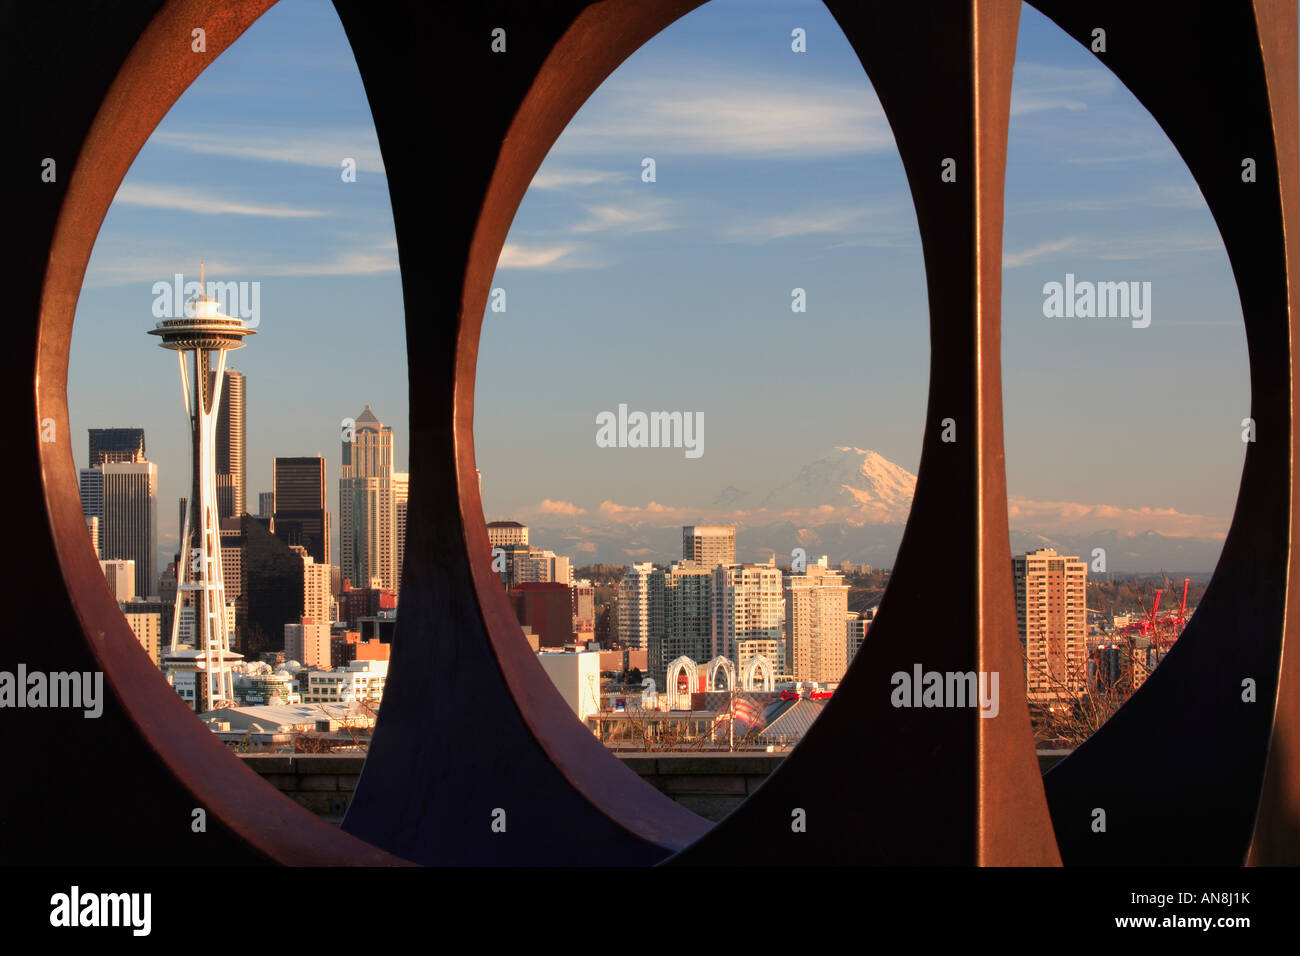 Seattle durch abstrakte Skulptur in Kerry Park gesehen Stockfoto